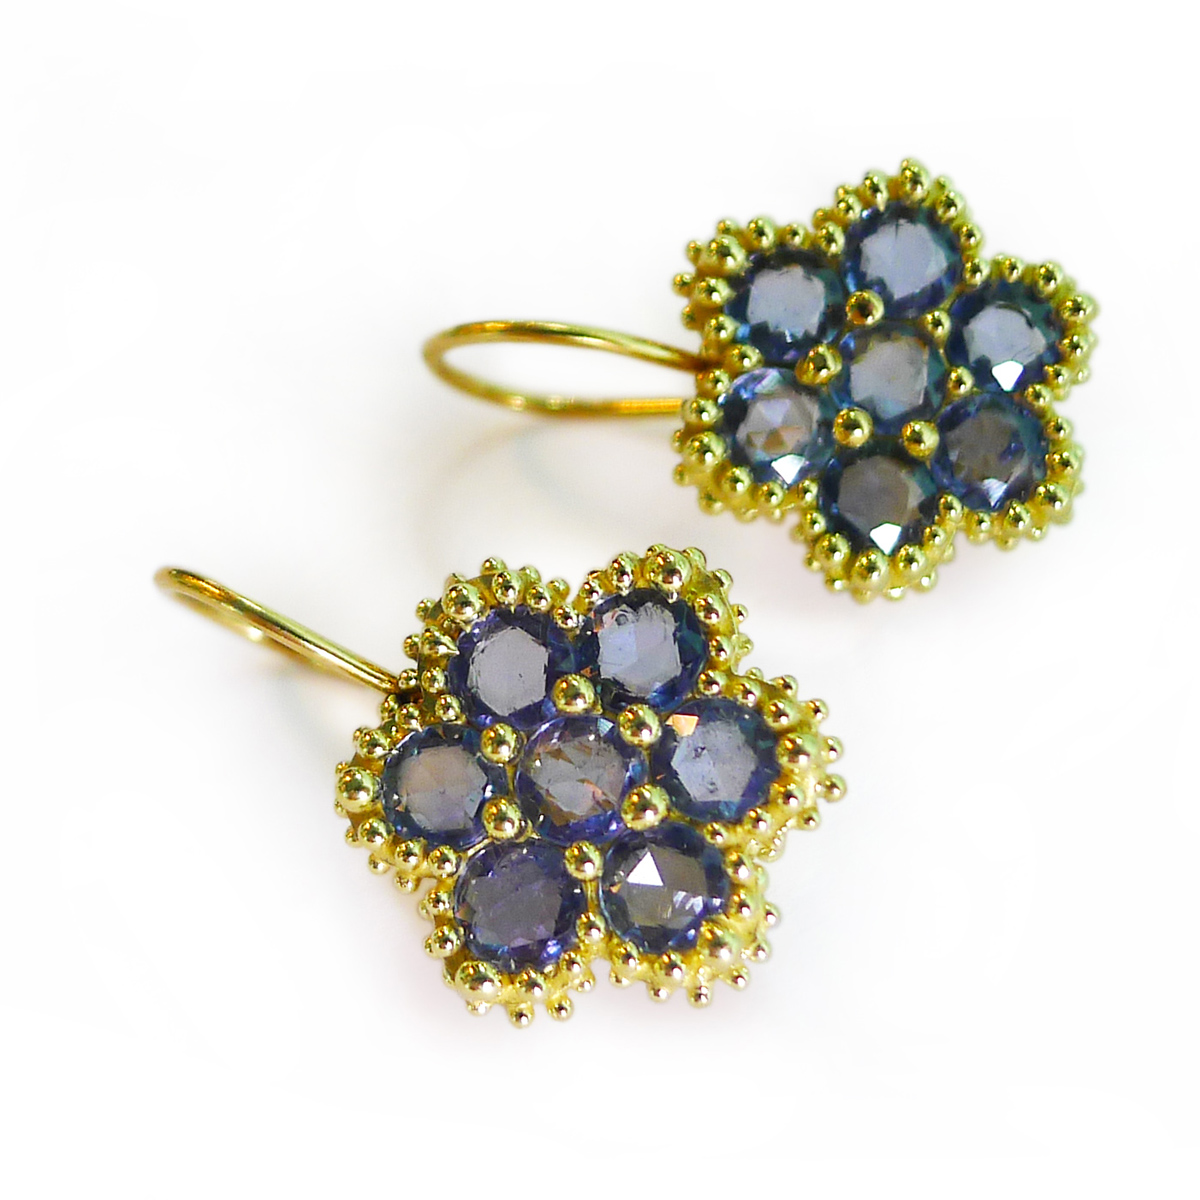 Angelica Cammarota Earrings